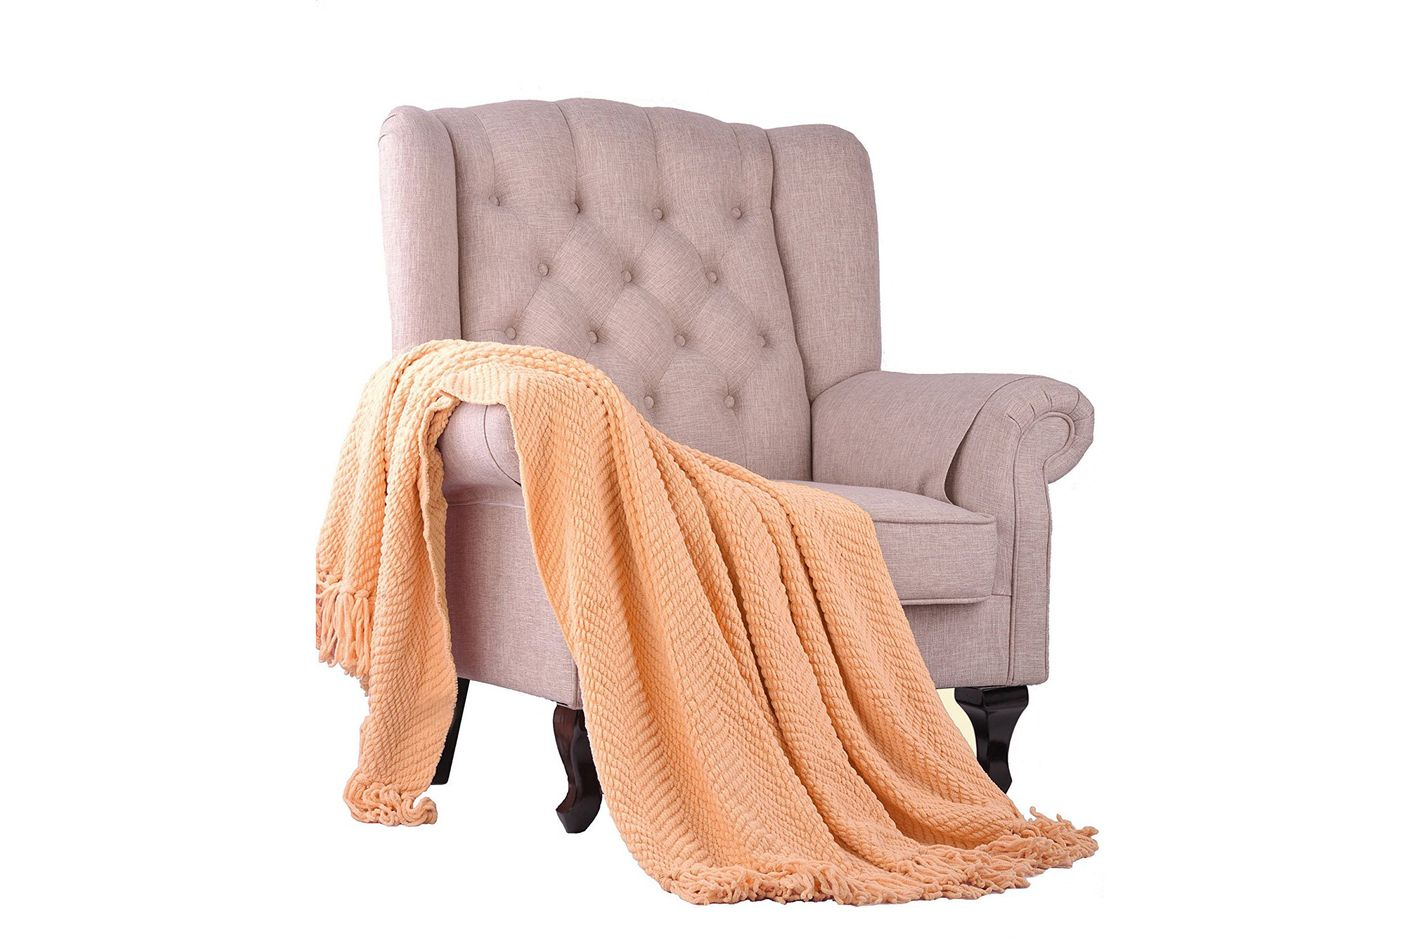 Boon Knitted Tweed Throw Couch Cover Blanket, Peach Melba